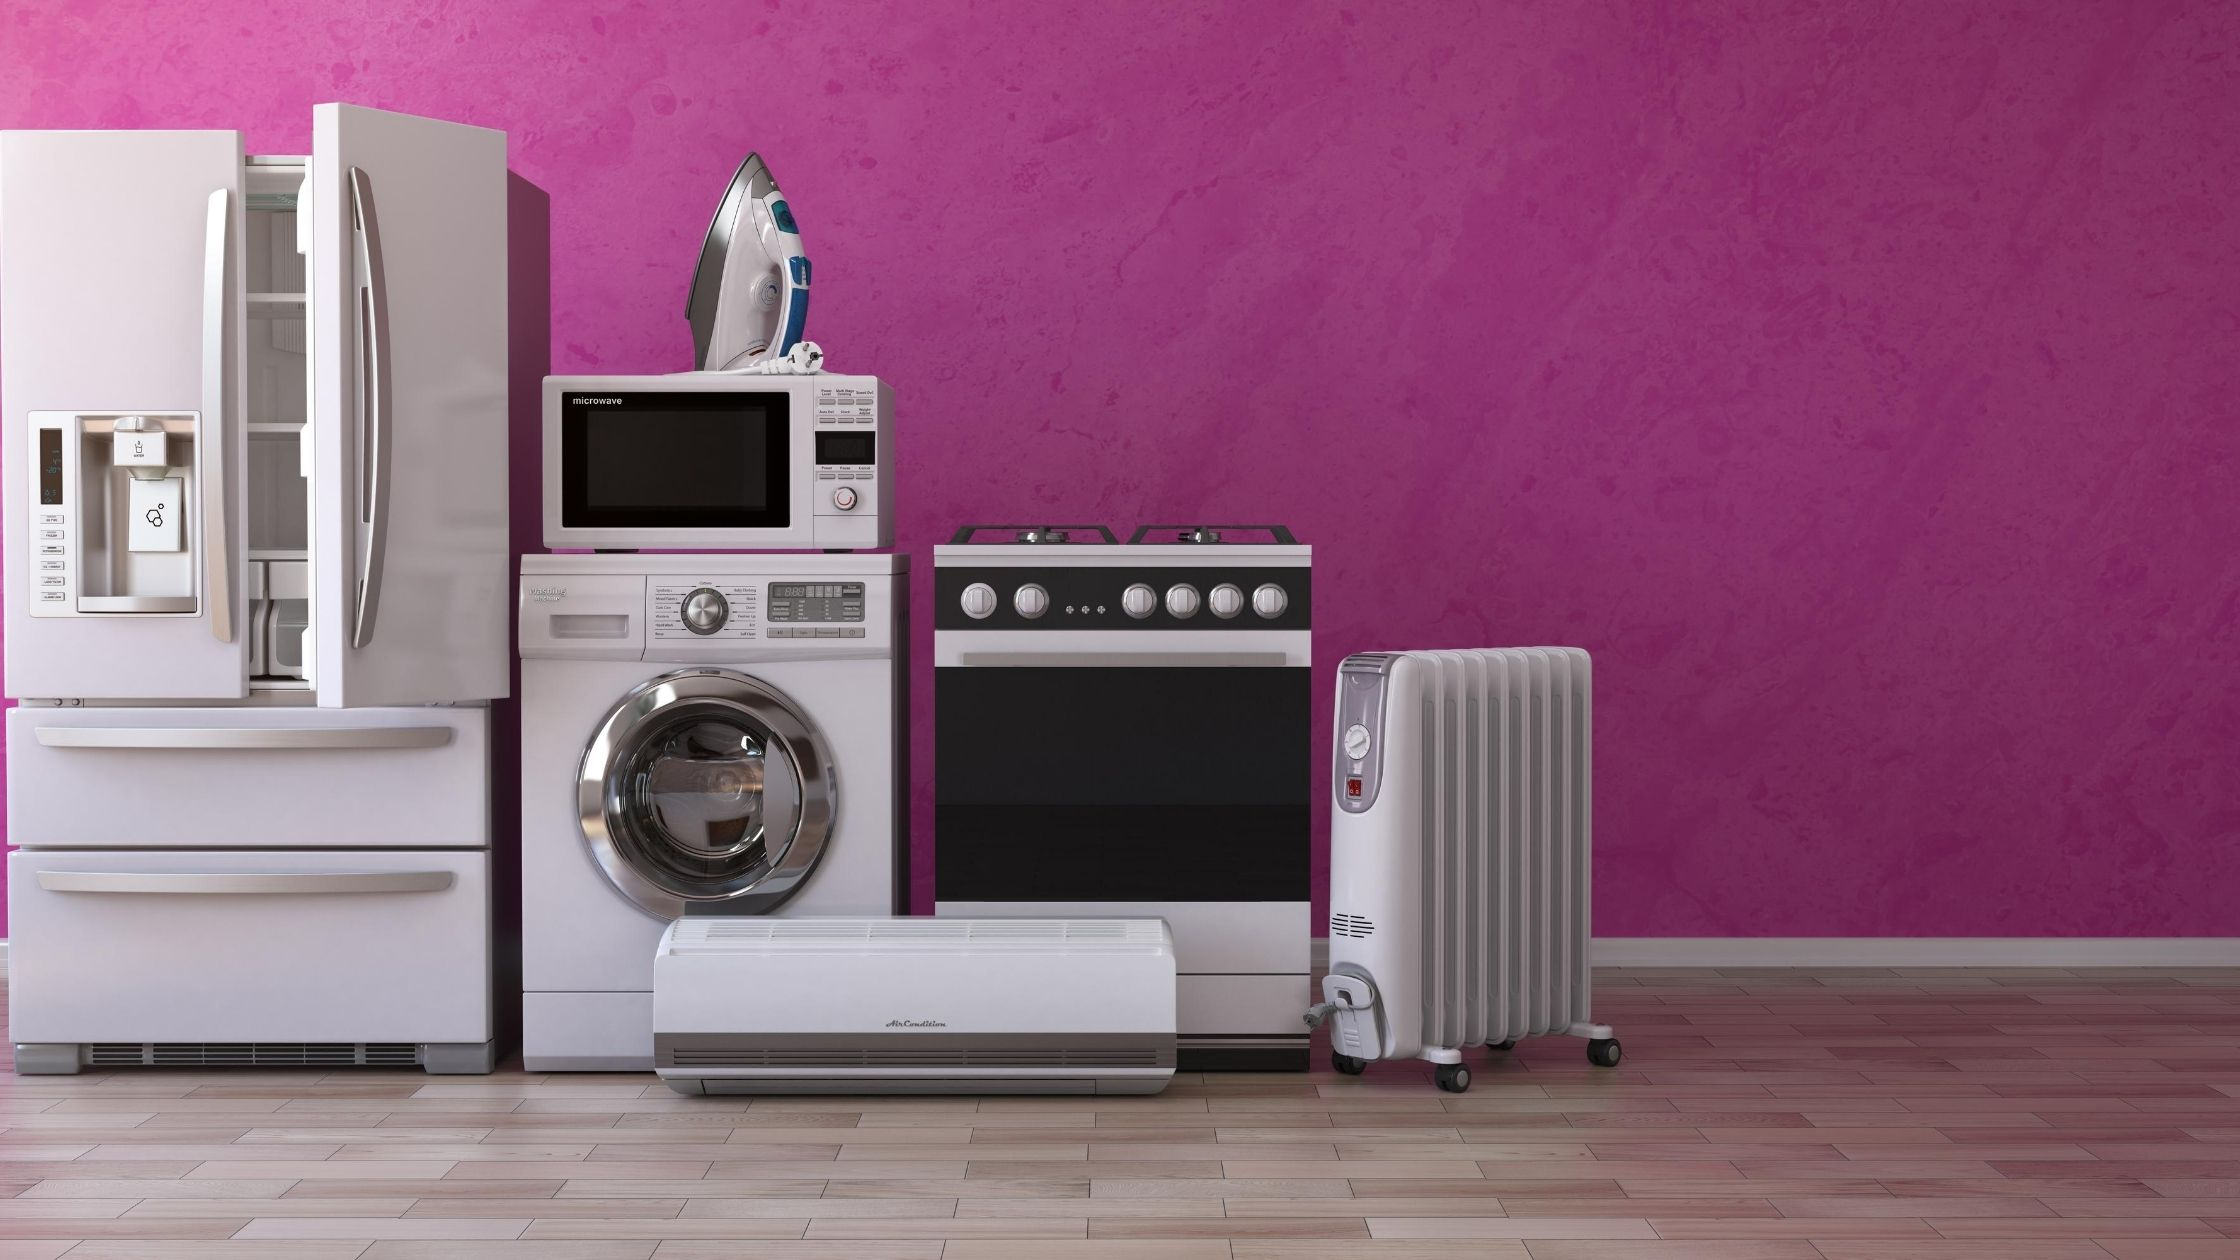 Are you allowed to purchase your own appliances & materials for your home construction or home renovation projects?